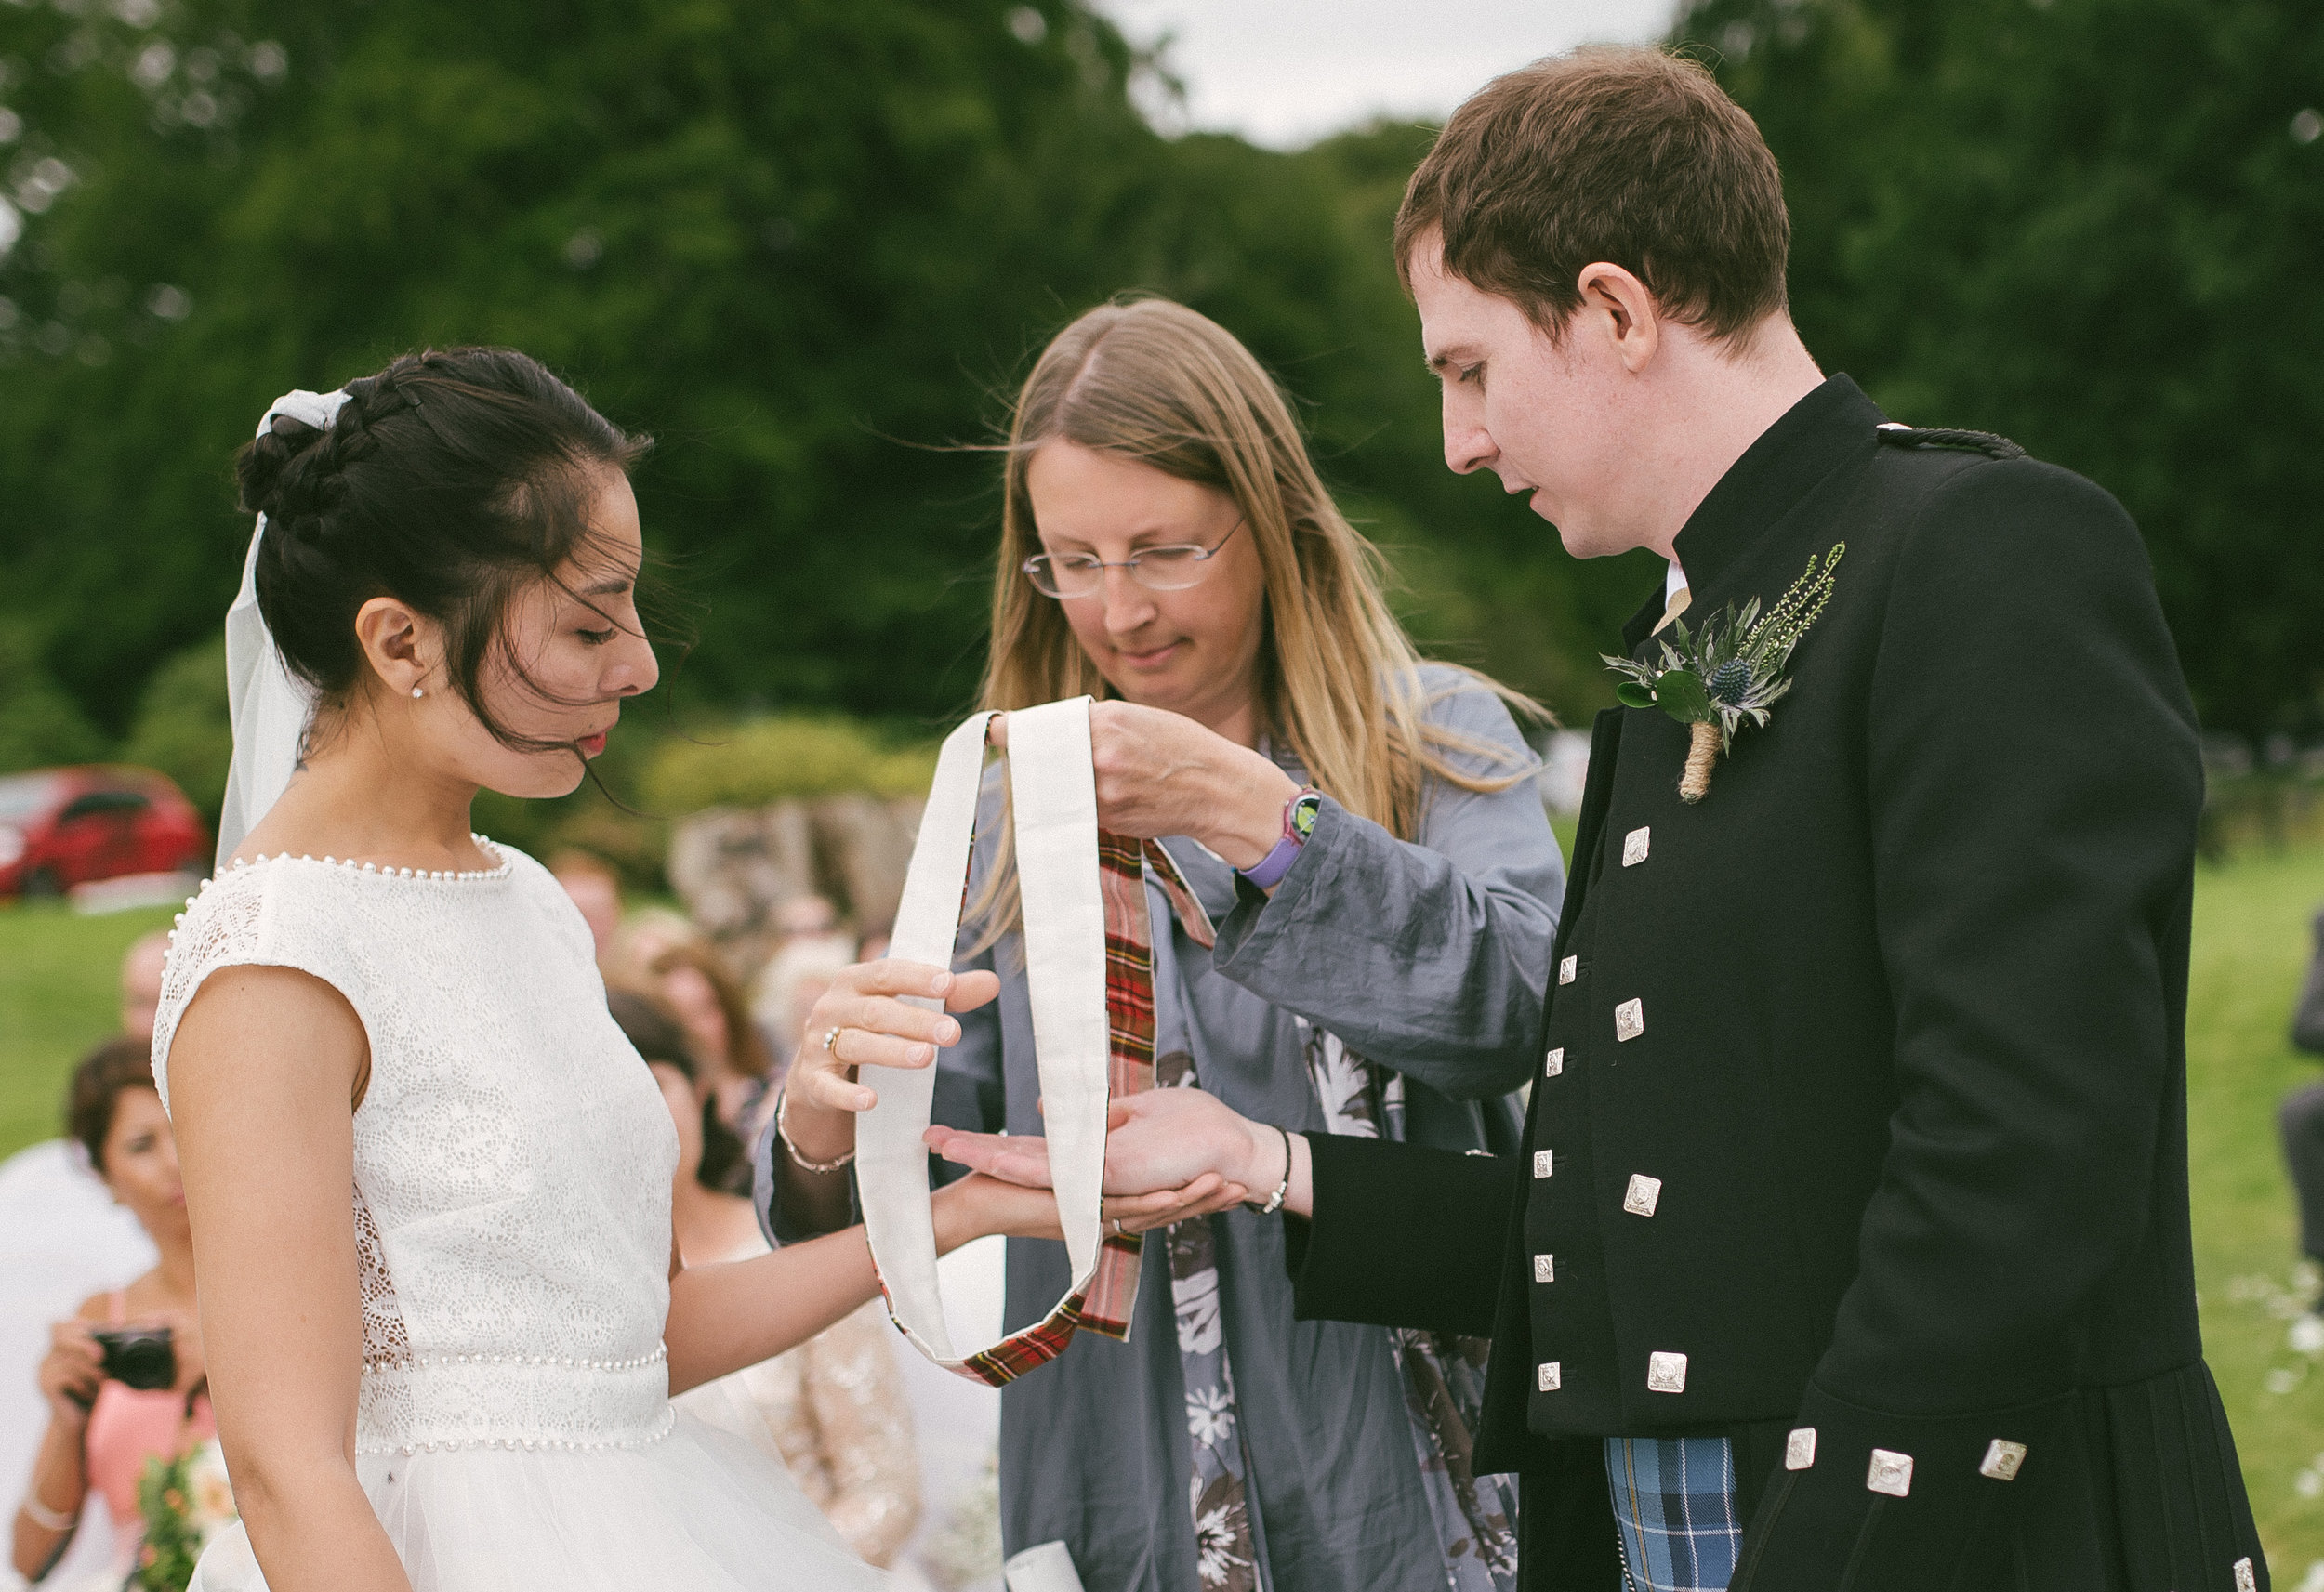 wedding-thainstone-house-hotel-scotland-photographer-martina-california-162.jpg